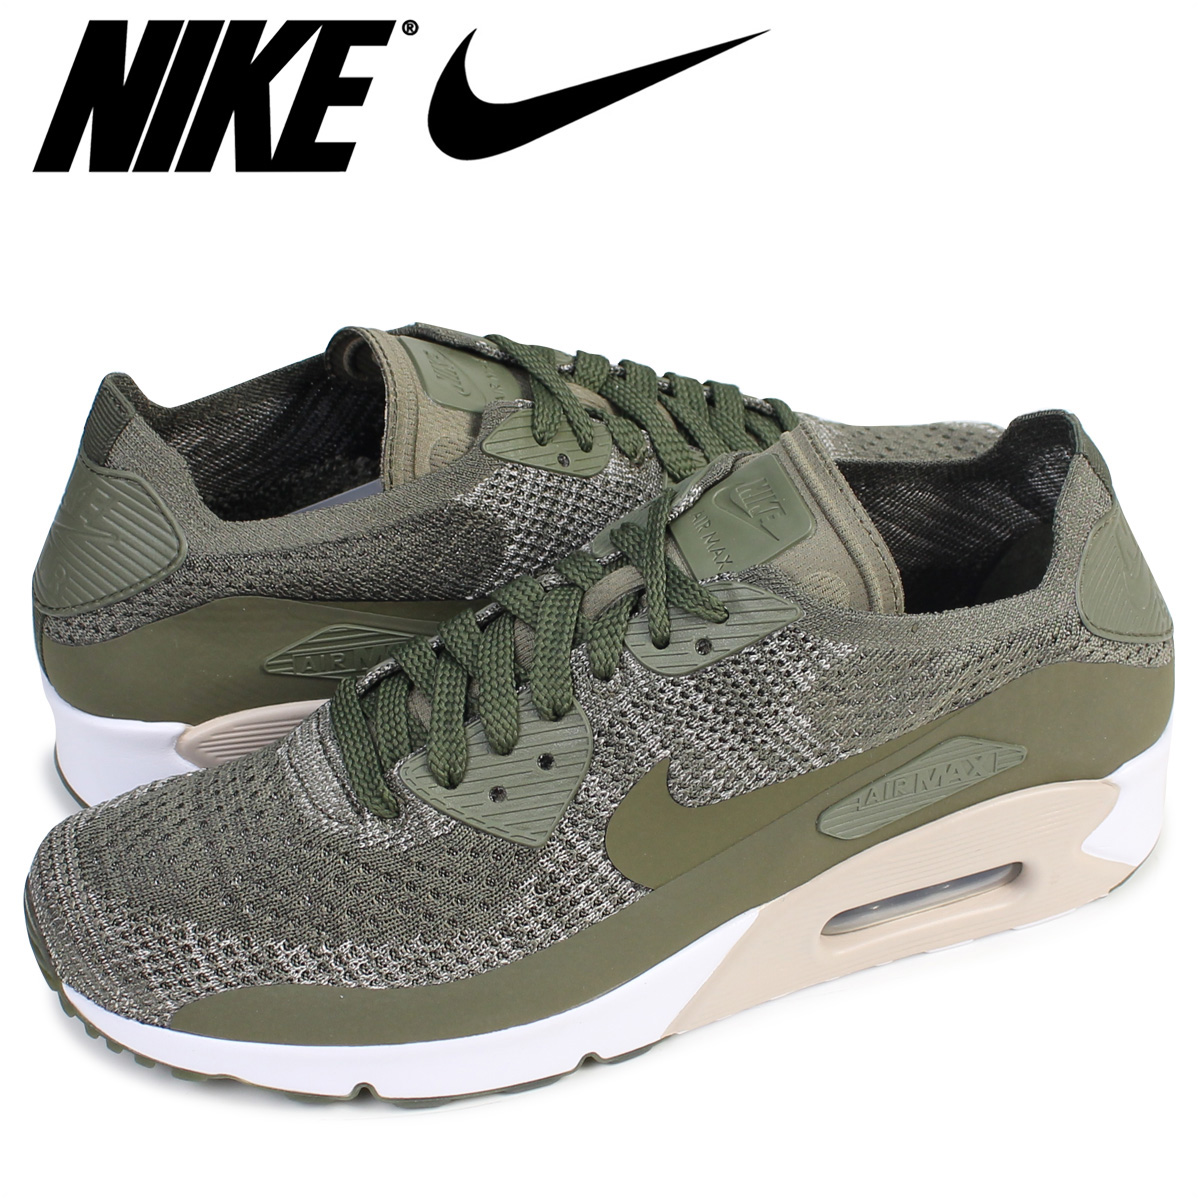 bf3a2fa5f9f91 Nike NIKE Air Max 90 ultra fly knit sneakers AIR MAX 90 ULTRA 2.0 FLYKNIT  875